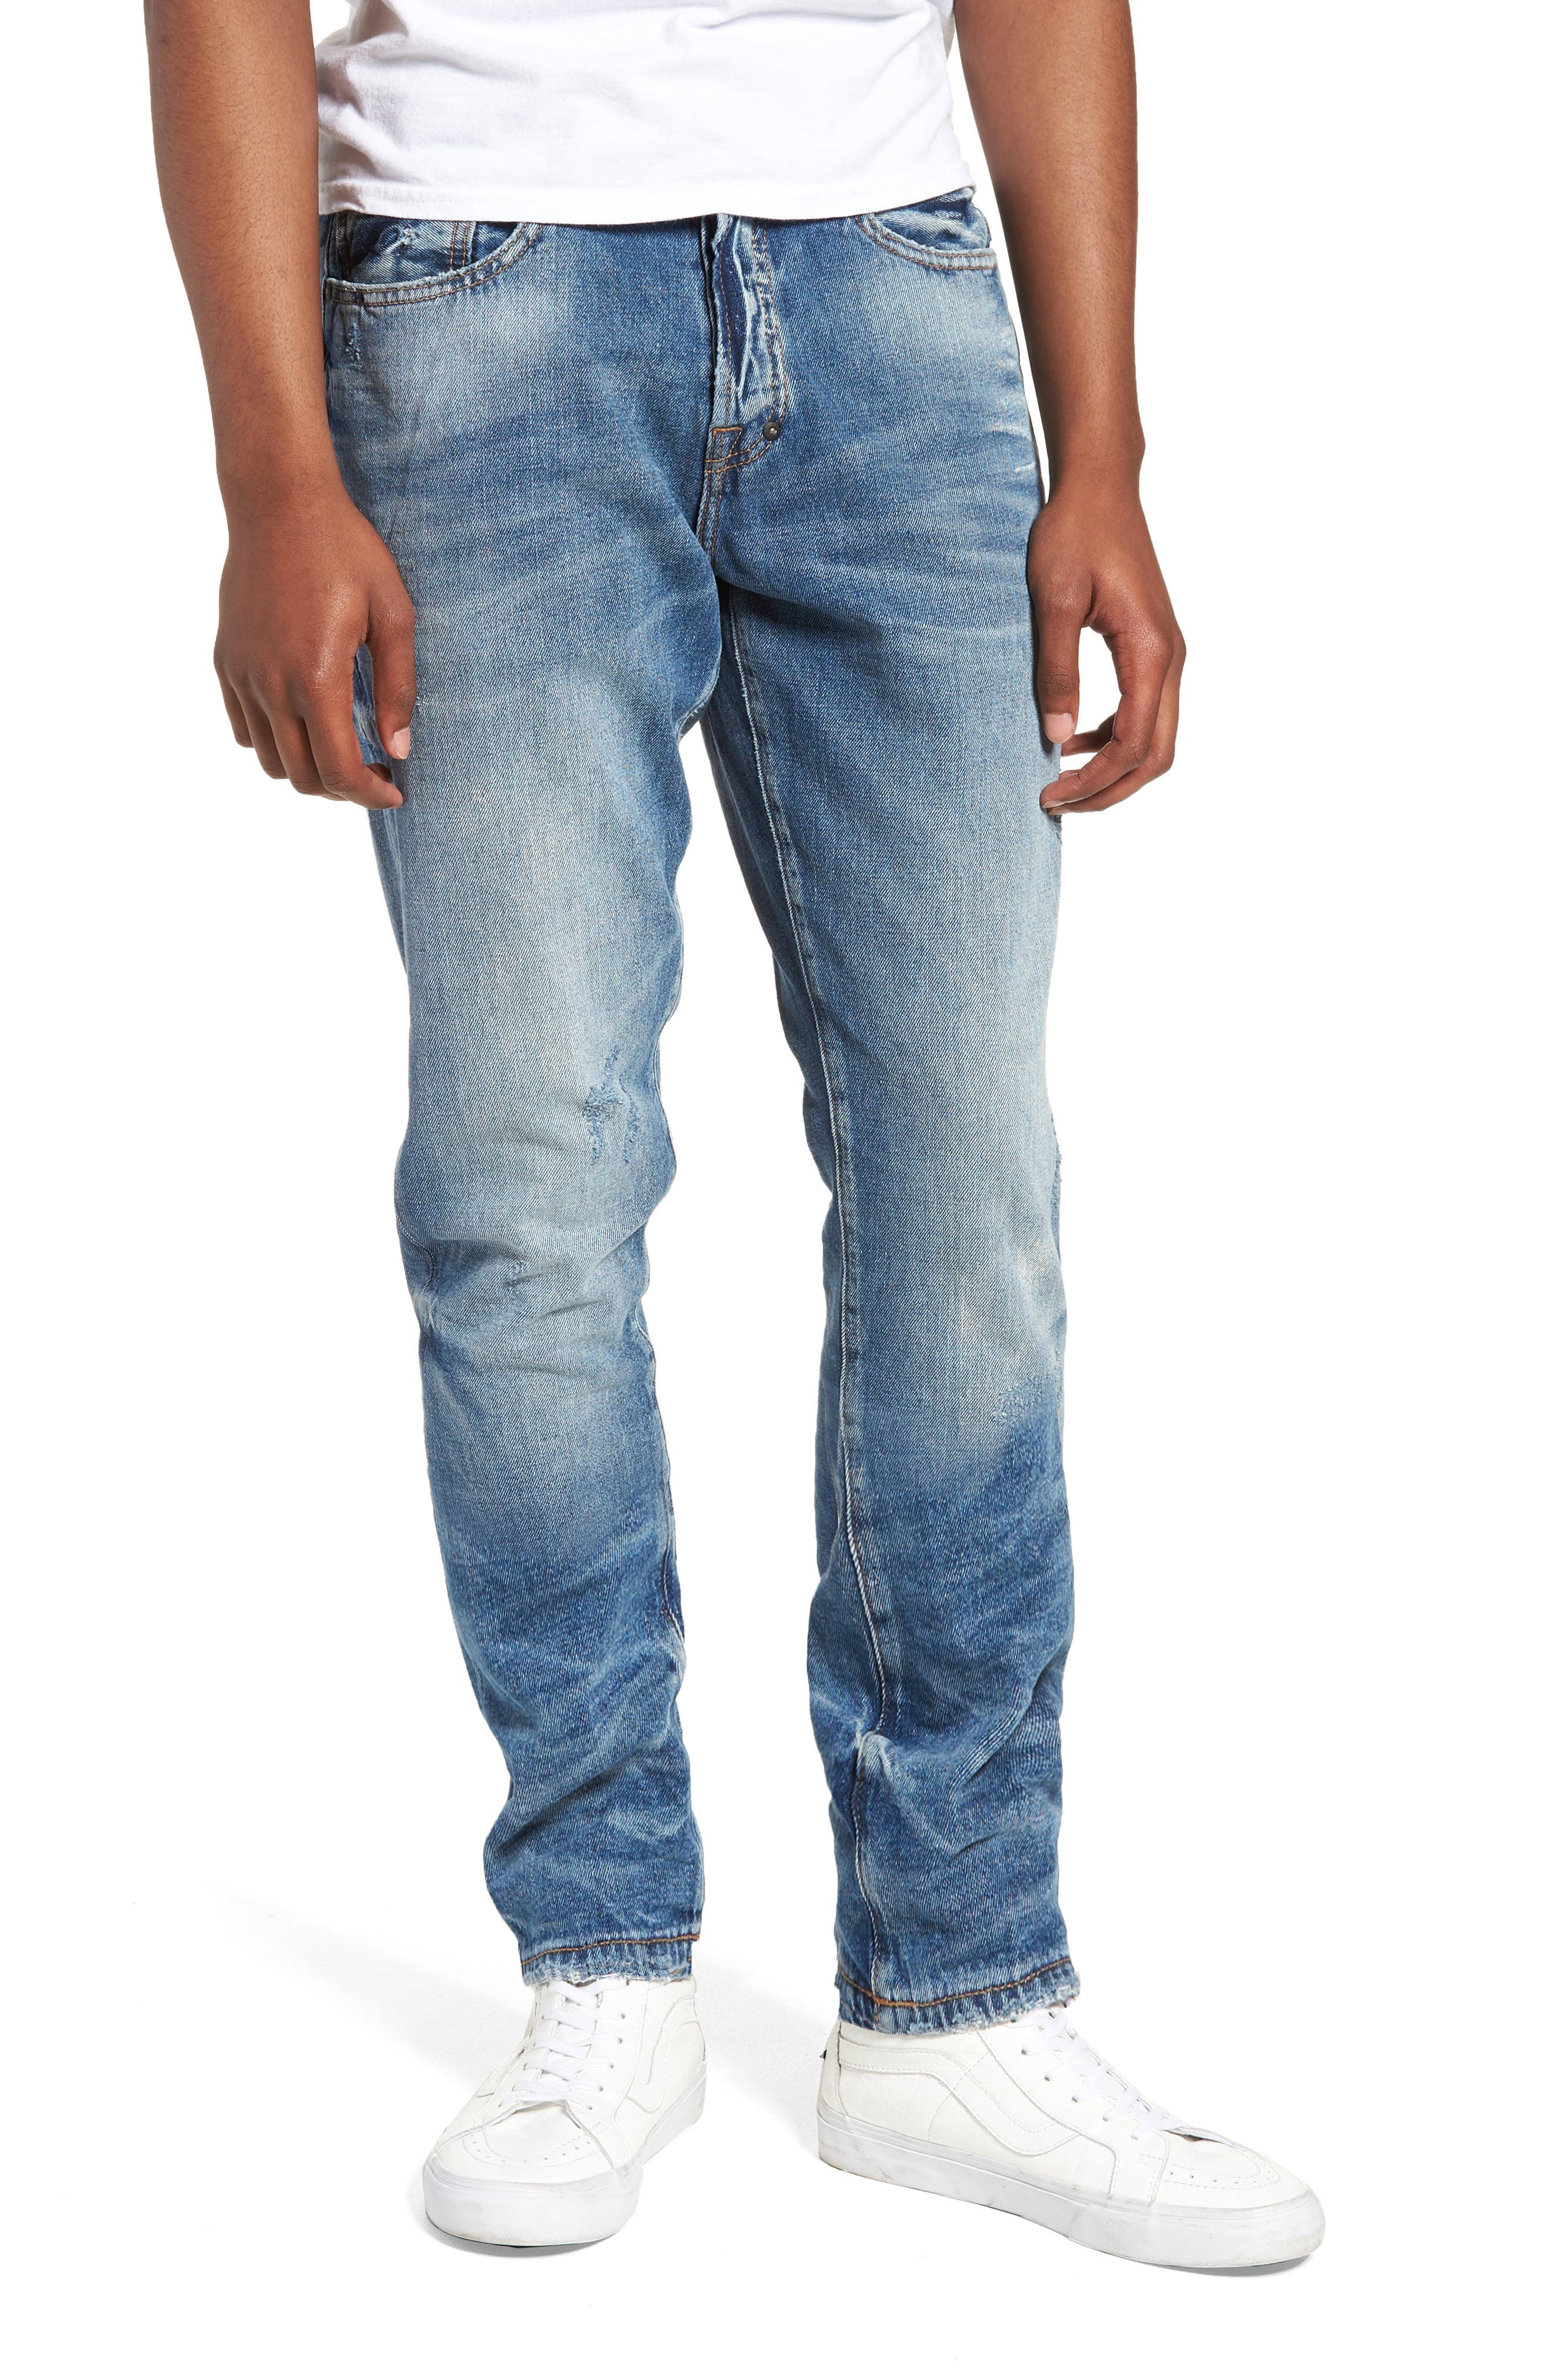 Le Sabre Tapered Fit,                             Main thumbnail 1, color,                             5 Year Wash